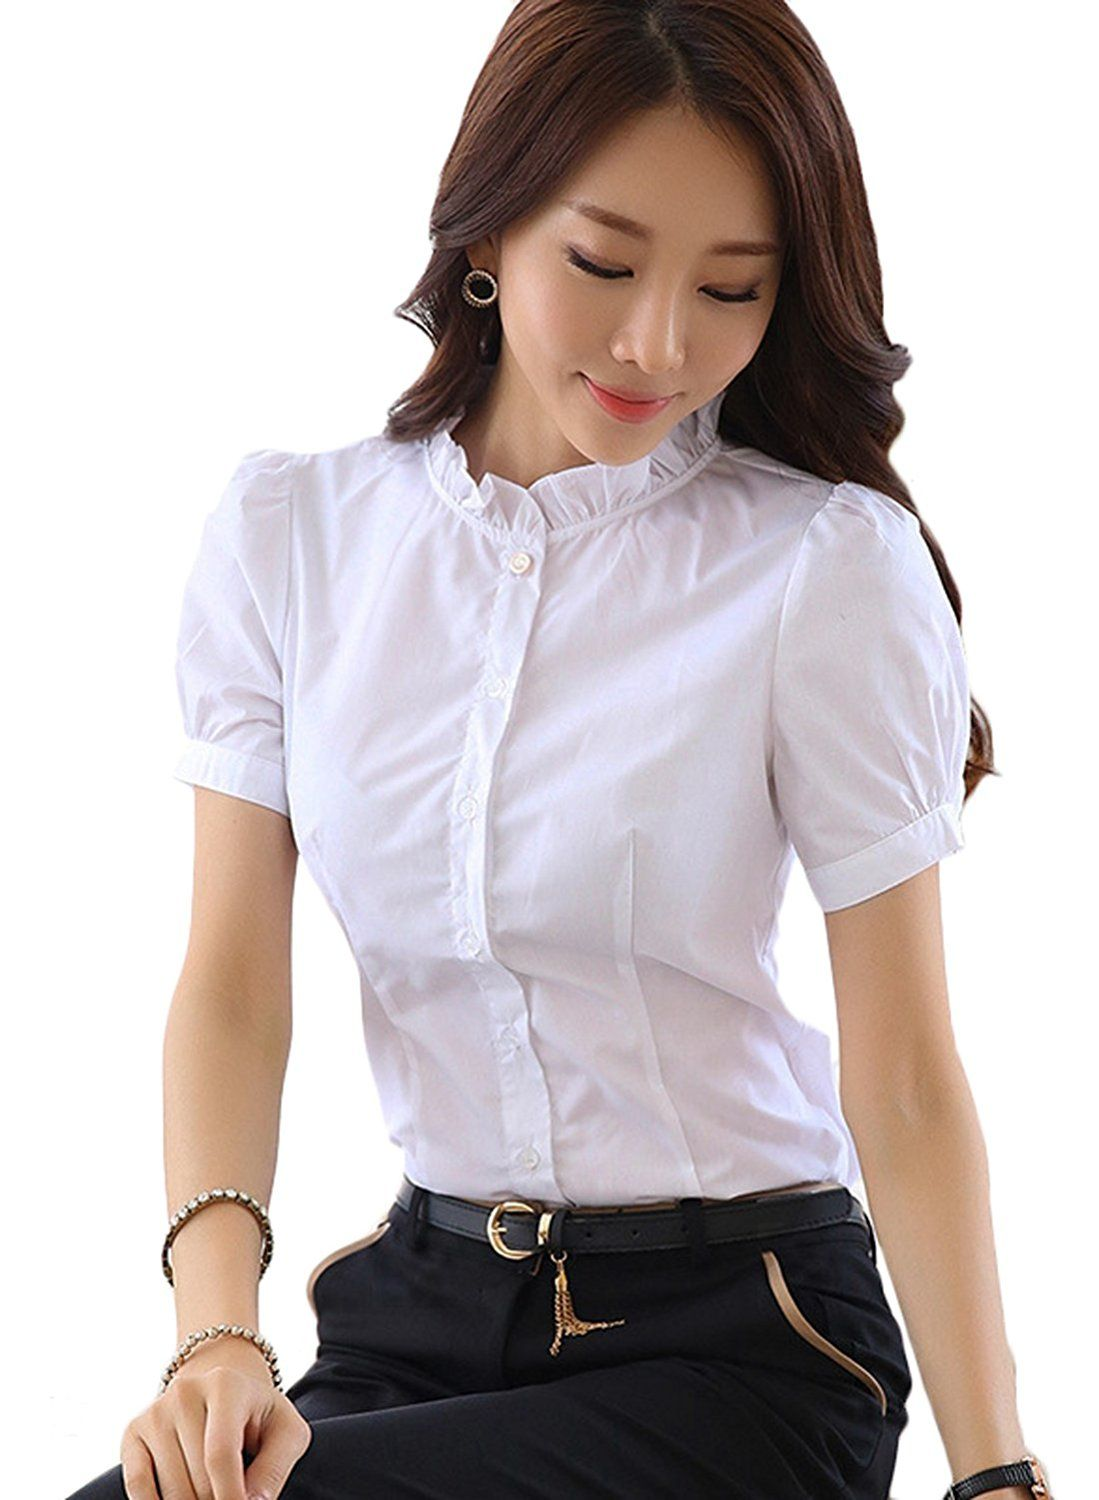 Chouyatou women 39 s casual ruffle collar fitted puff short for Fitted white dress shirt womens